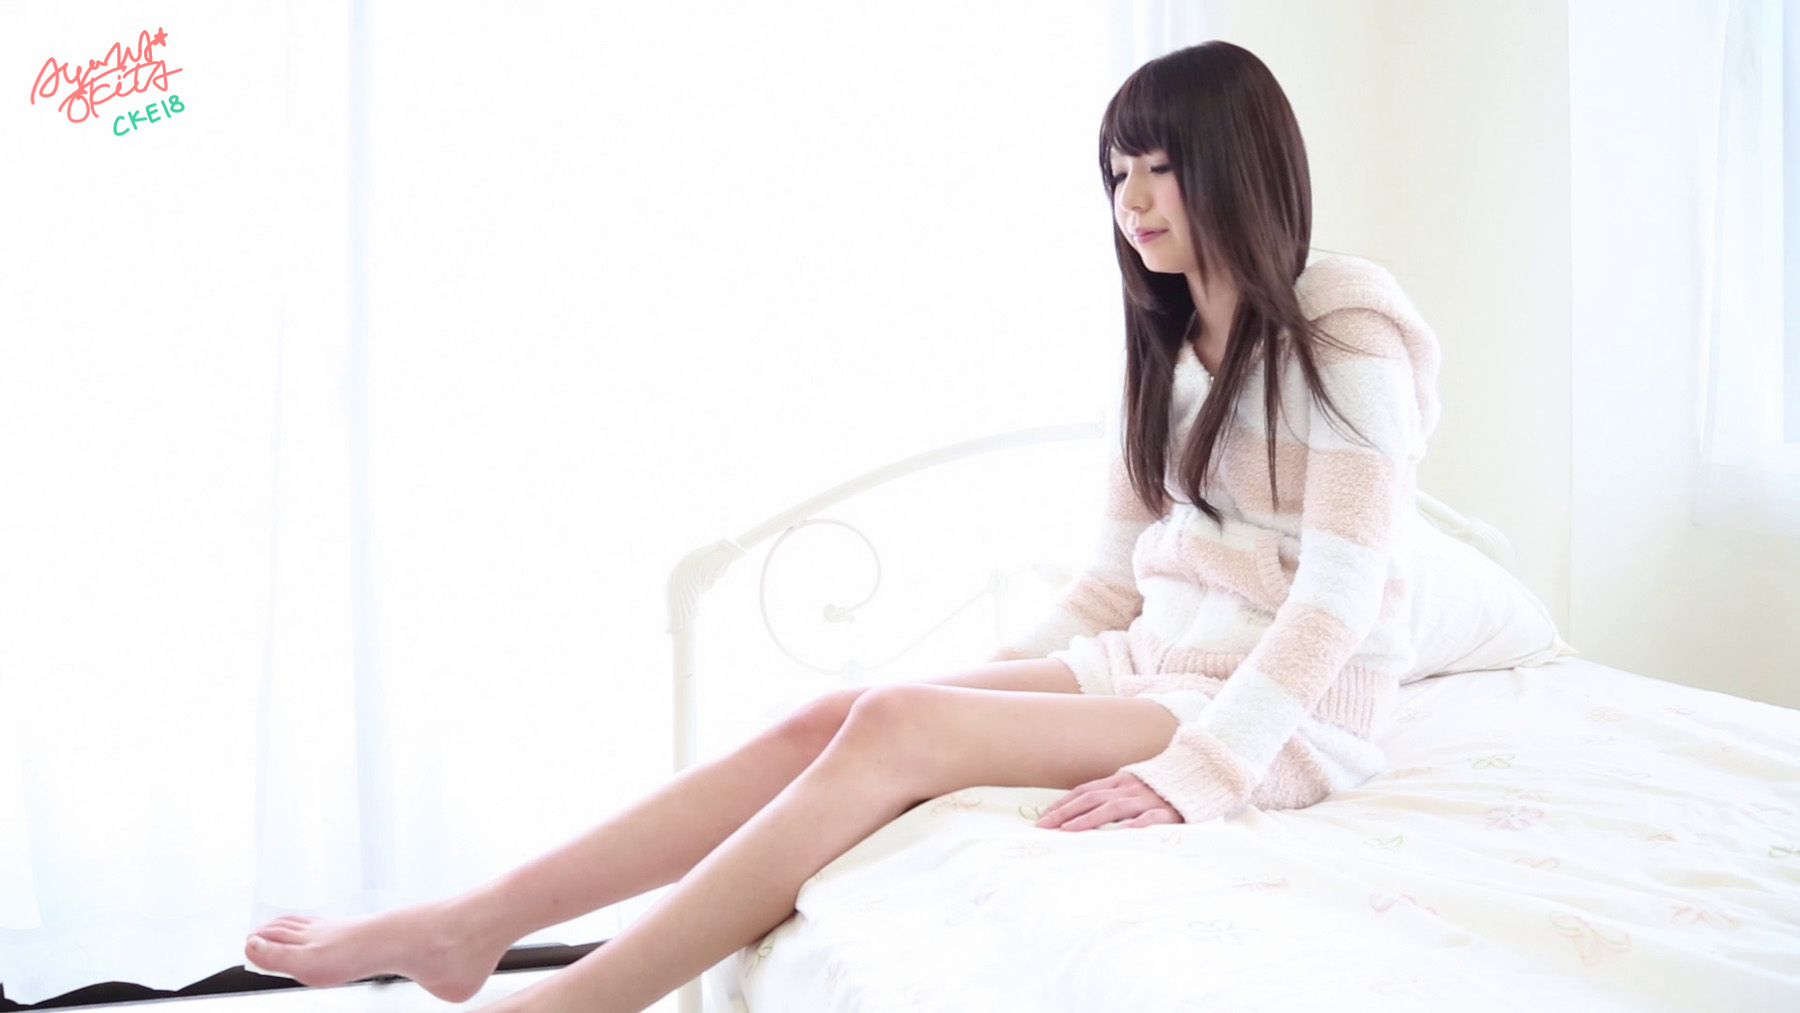 japanese girl nude cute soft